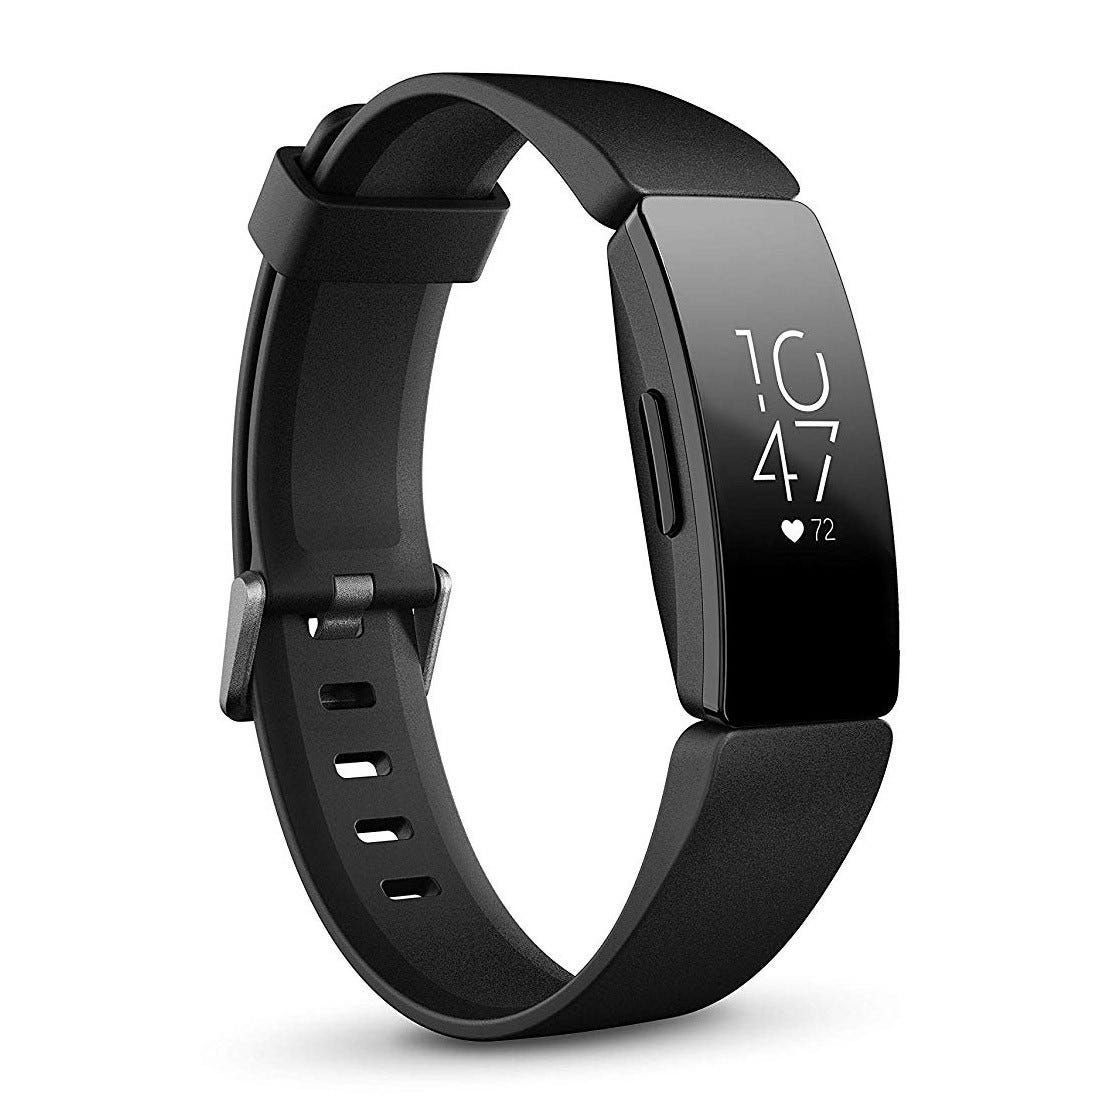 The FitBit Inspire is a simple and inexpensive entry into FitBit's system.